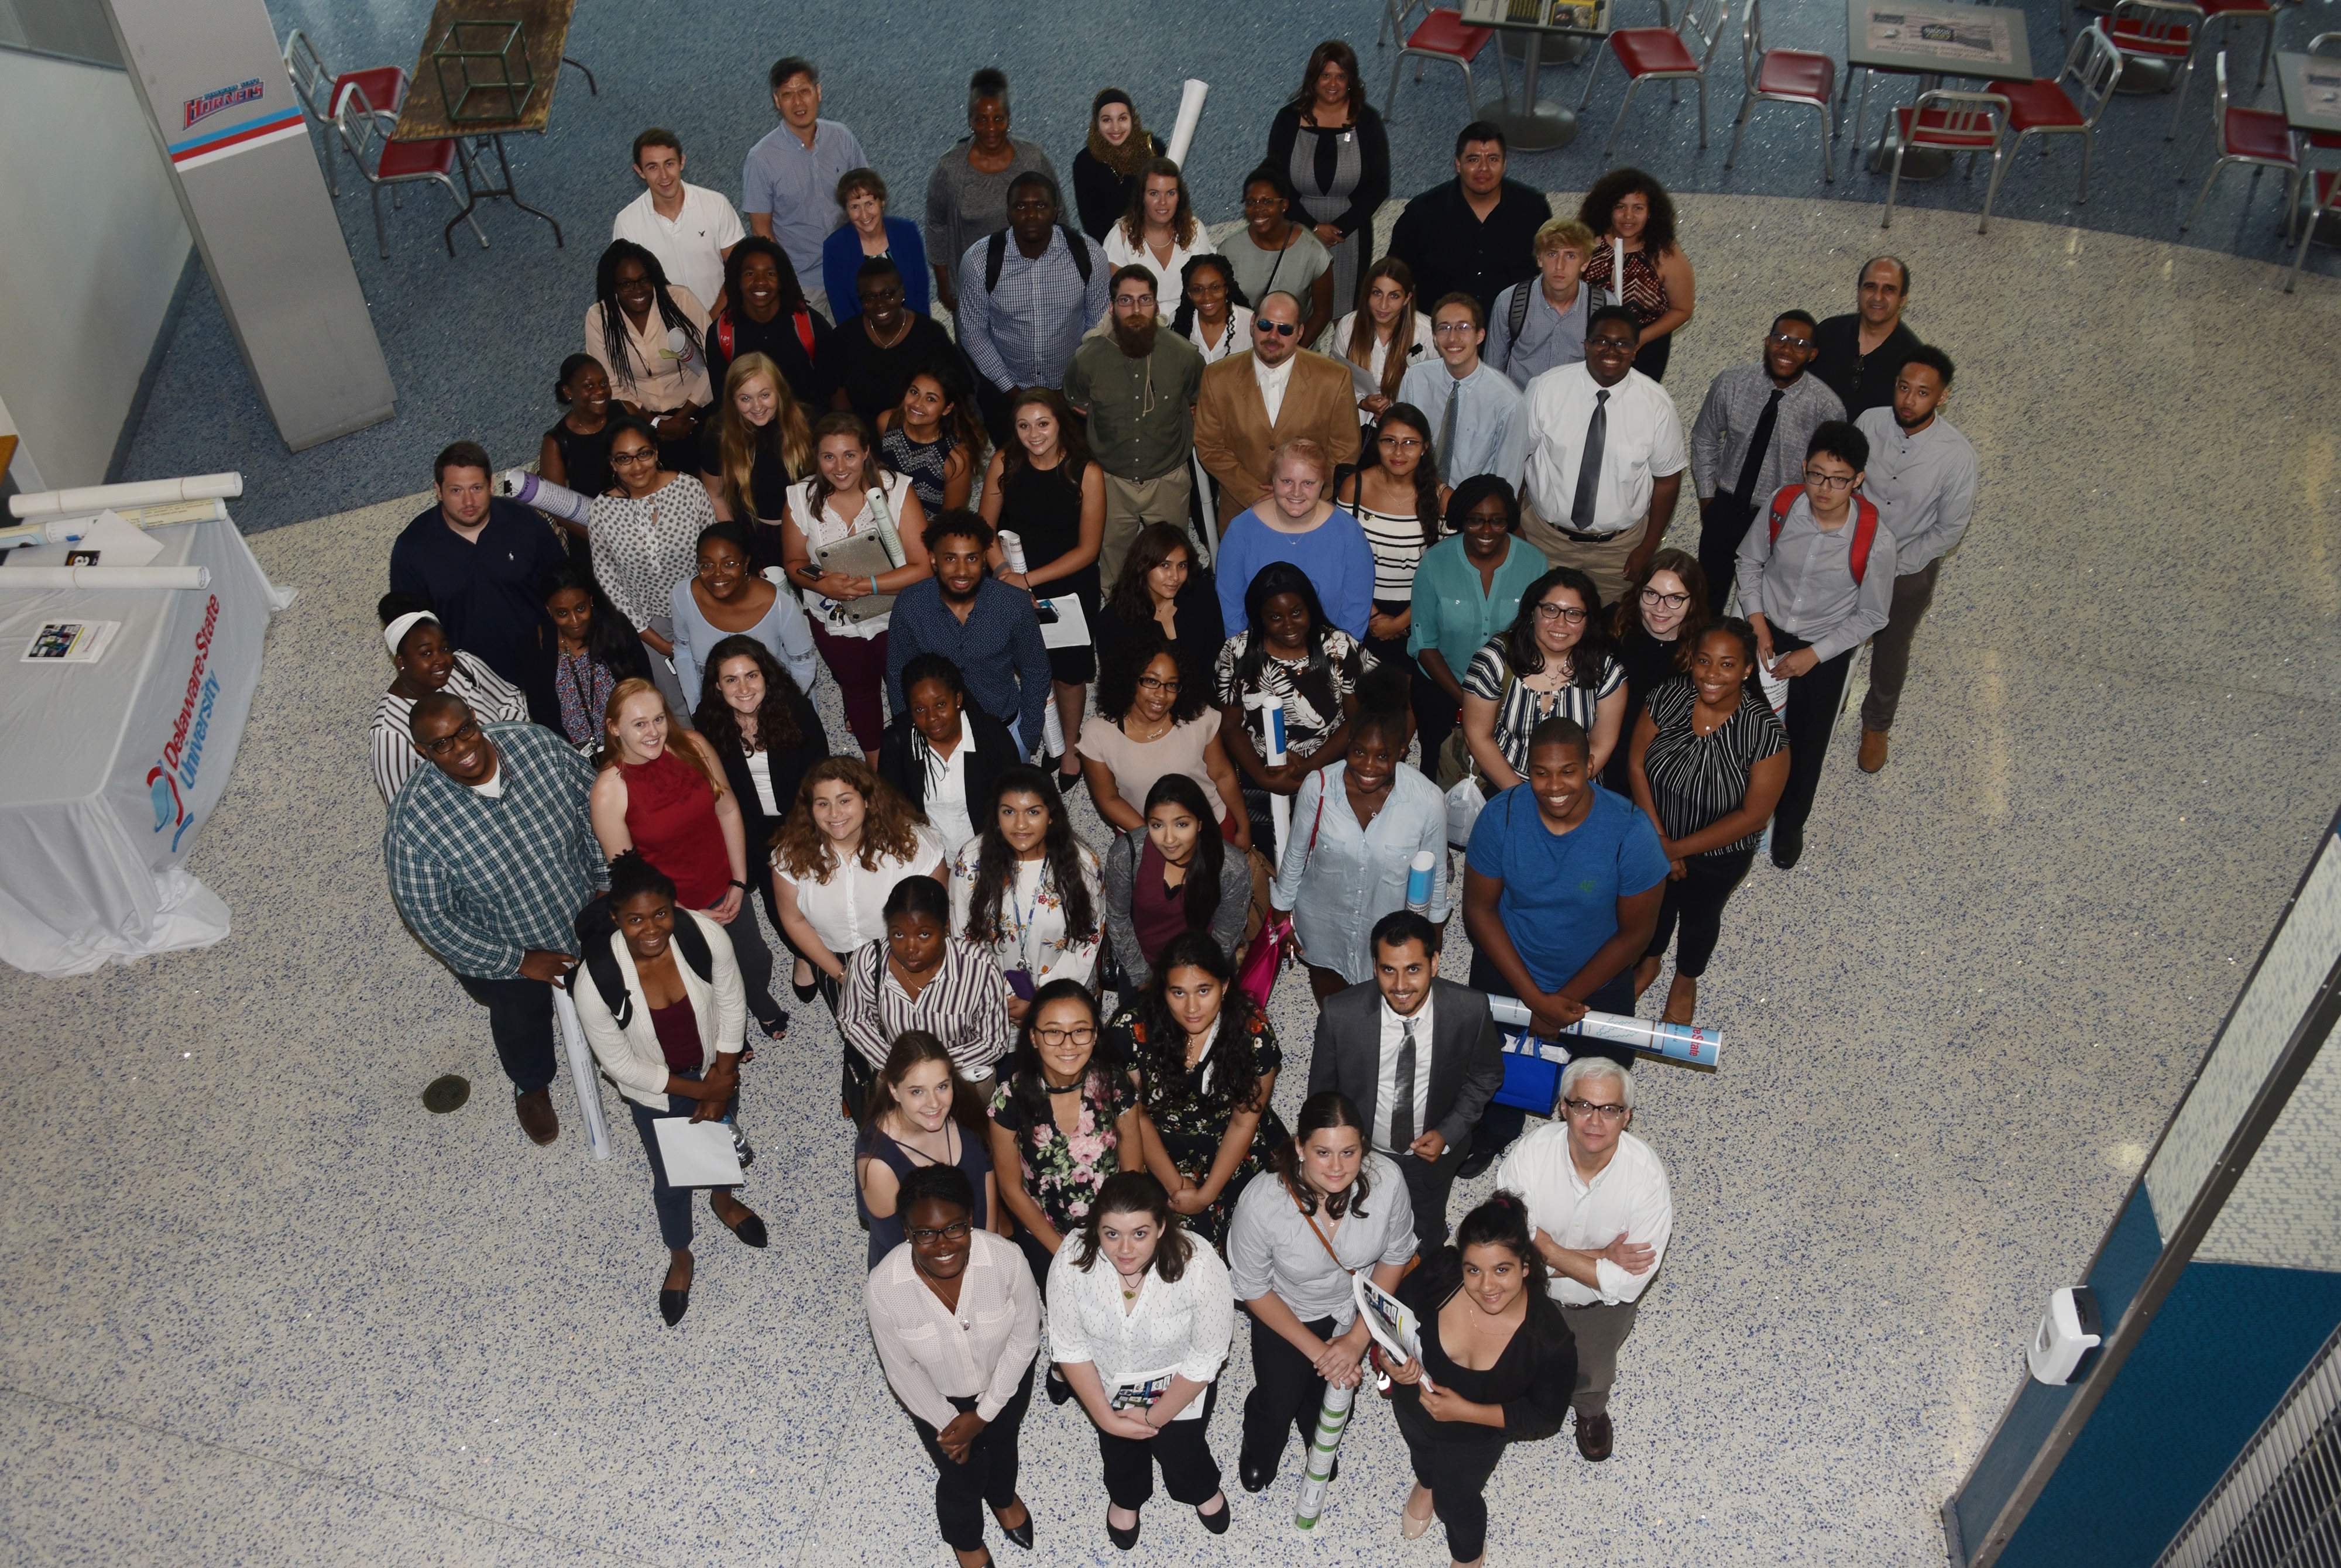 The 2019 Summer Research Symposium participants pose for a group shot at the end of the July 26 event.